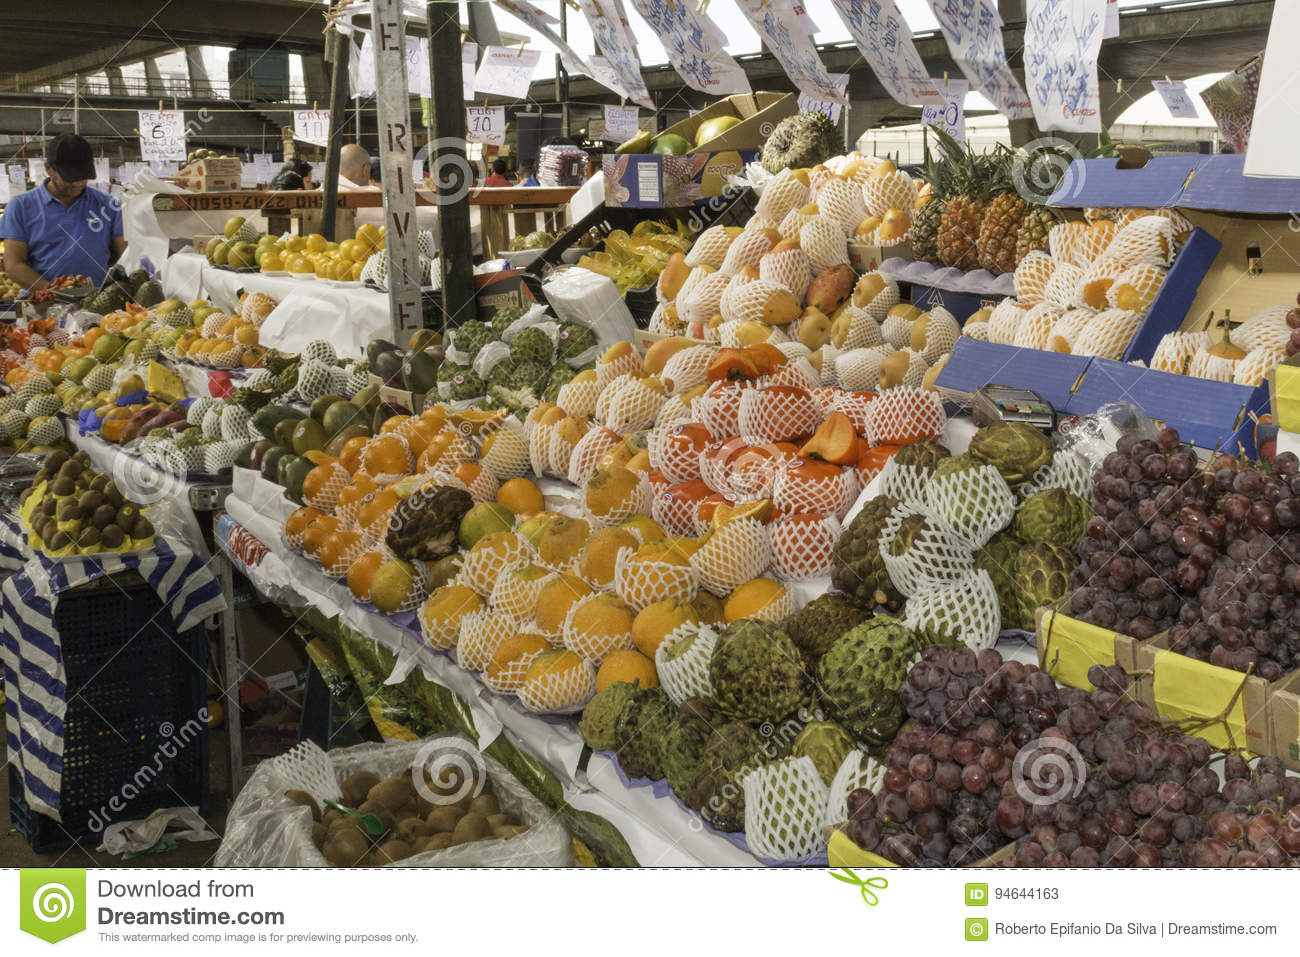 Fresh fruits and fresh vegetables direct from the farms